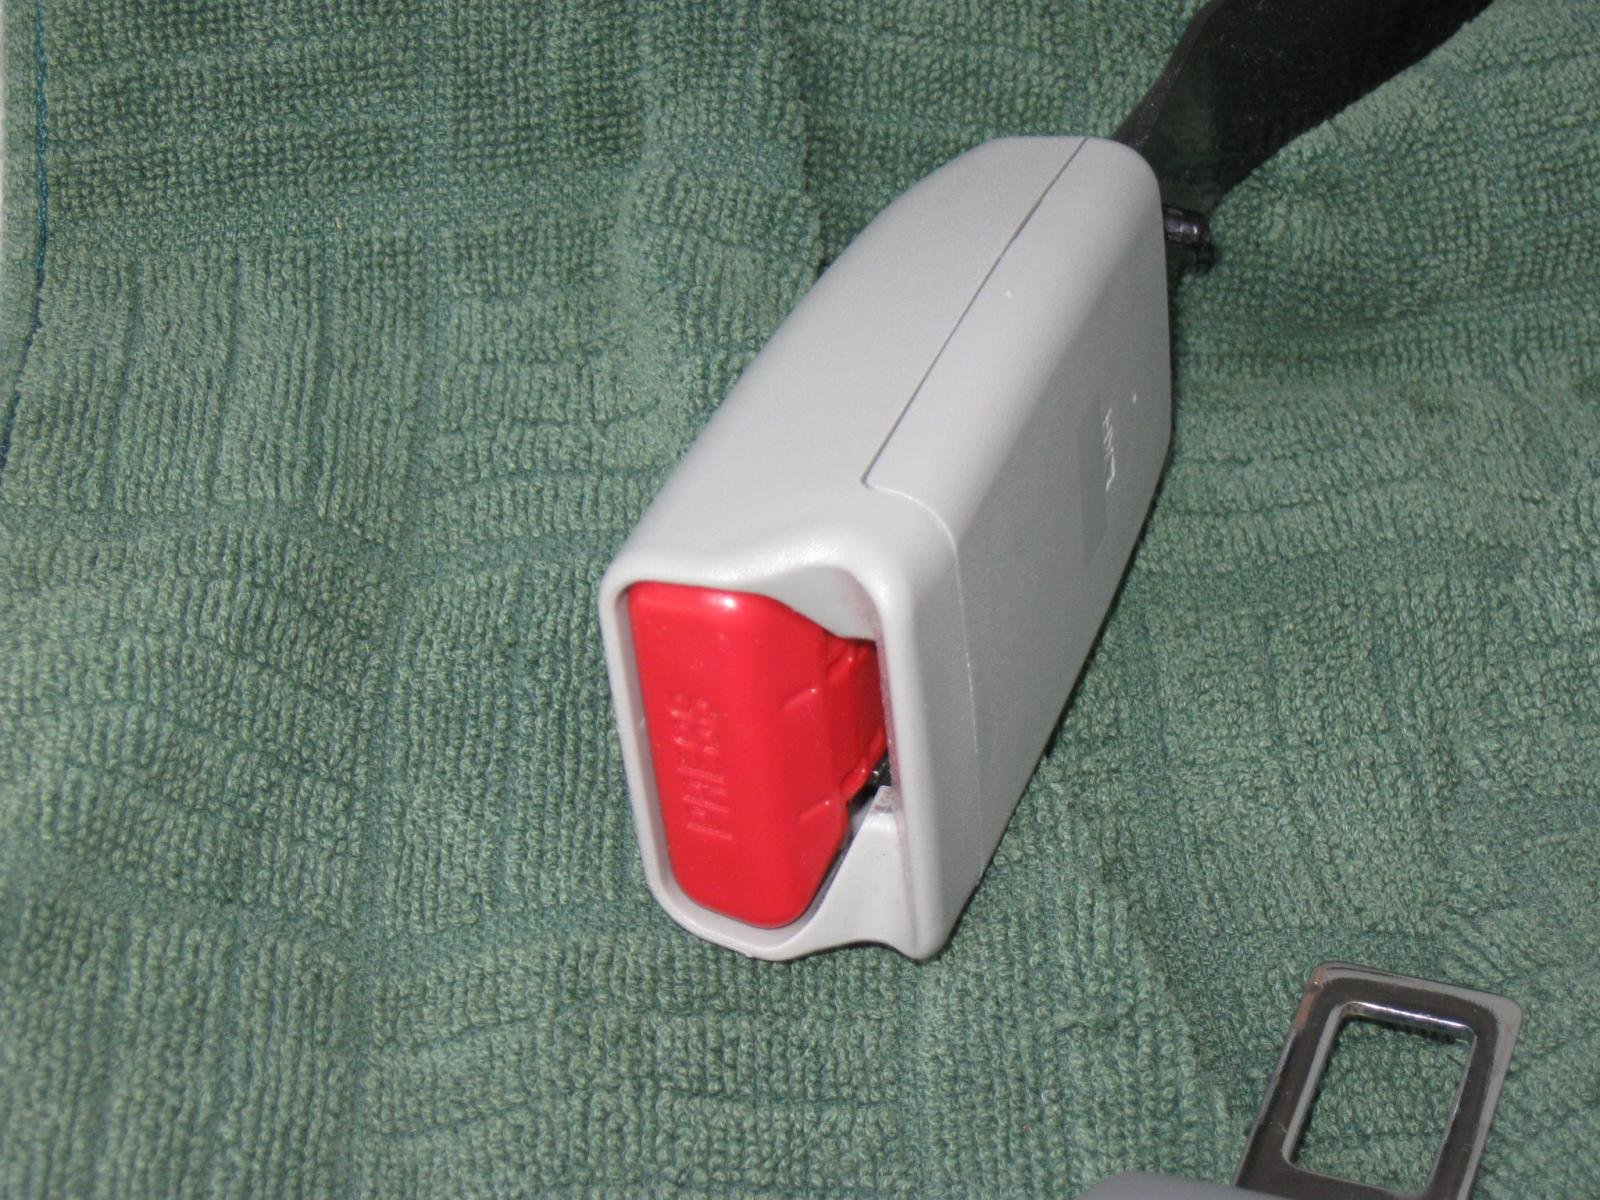 Disable Annoying Seat Belt Chime In A 2012 Honda Civic